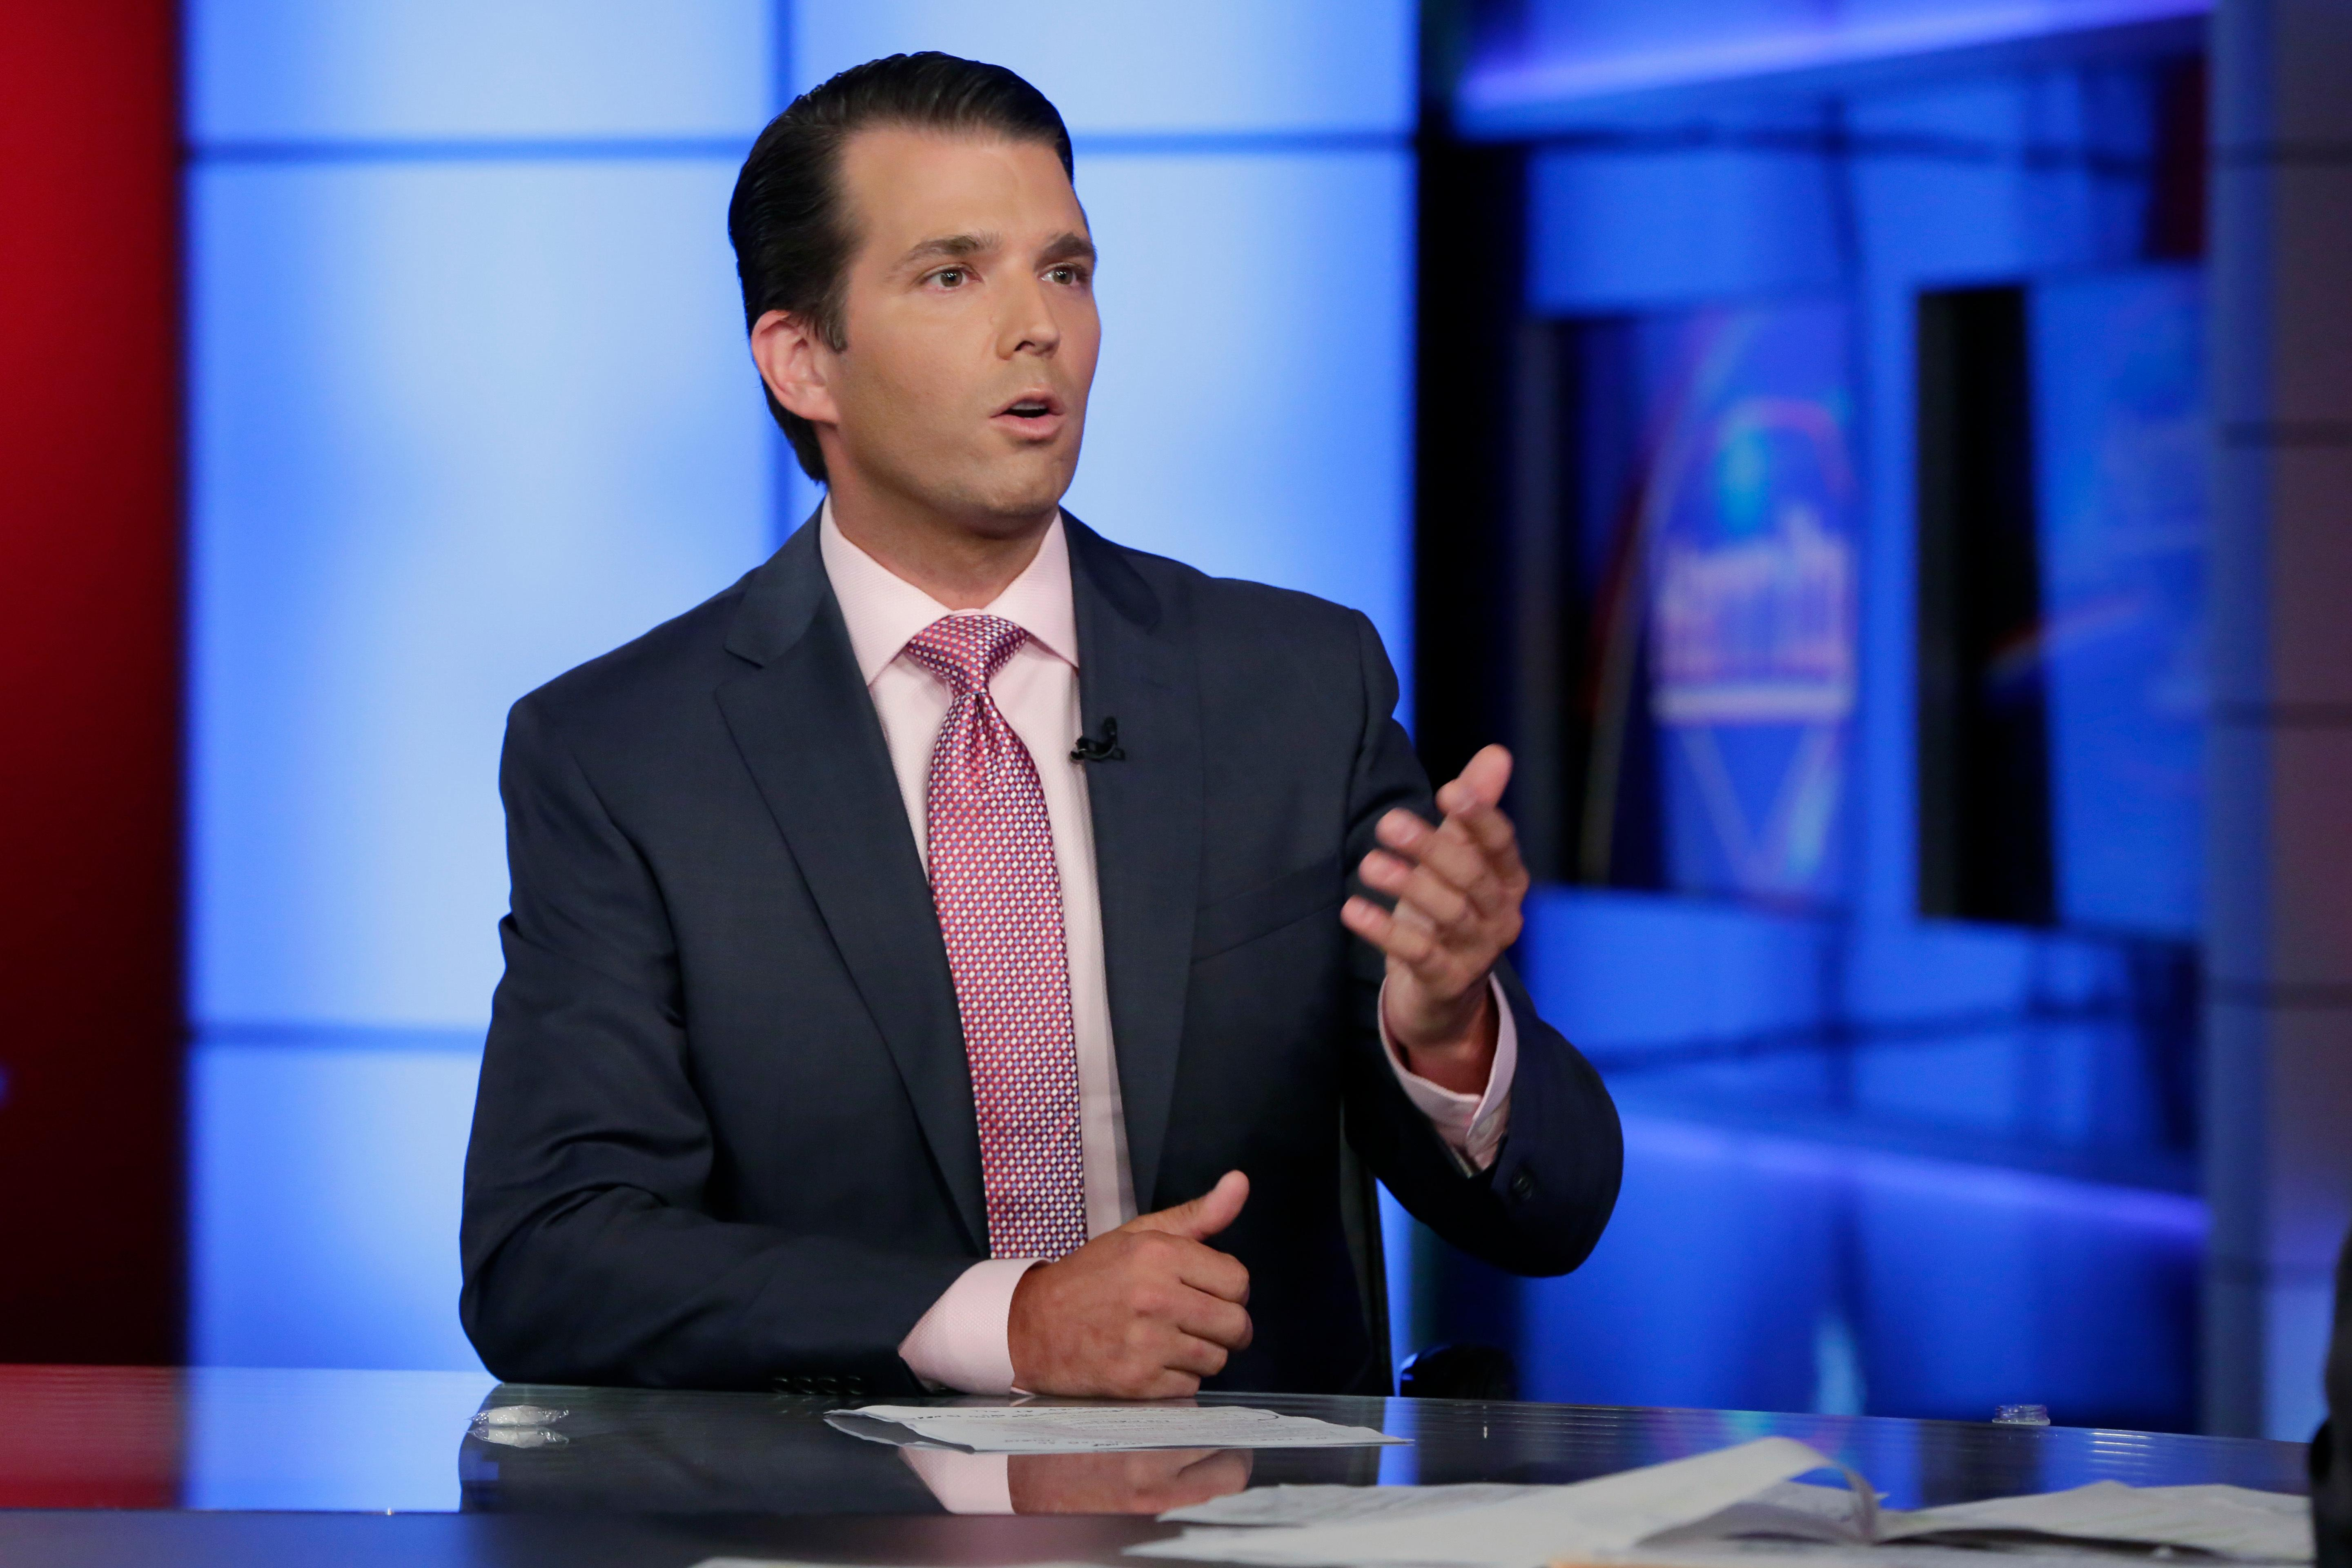 Donald Trump Jr. is interviewed by host Sean Hannity on his Fox News Channel television program, in New York Tuesday, July 11, 2017. Donald Trump Jr. has long been his father's id, the brawler who has helped fuel the president's pugilistic instincts and stood firm as one of his fiercest defenders. Now the president's eldest son is at the center of the firestorm over Russian connections swirling around his father's administration and trying to fight off charges that he was open to colluding with Moscow to defeat Hillary Clinton. (AP Photo/Richard Drew)